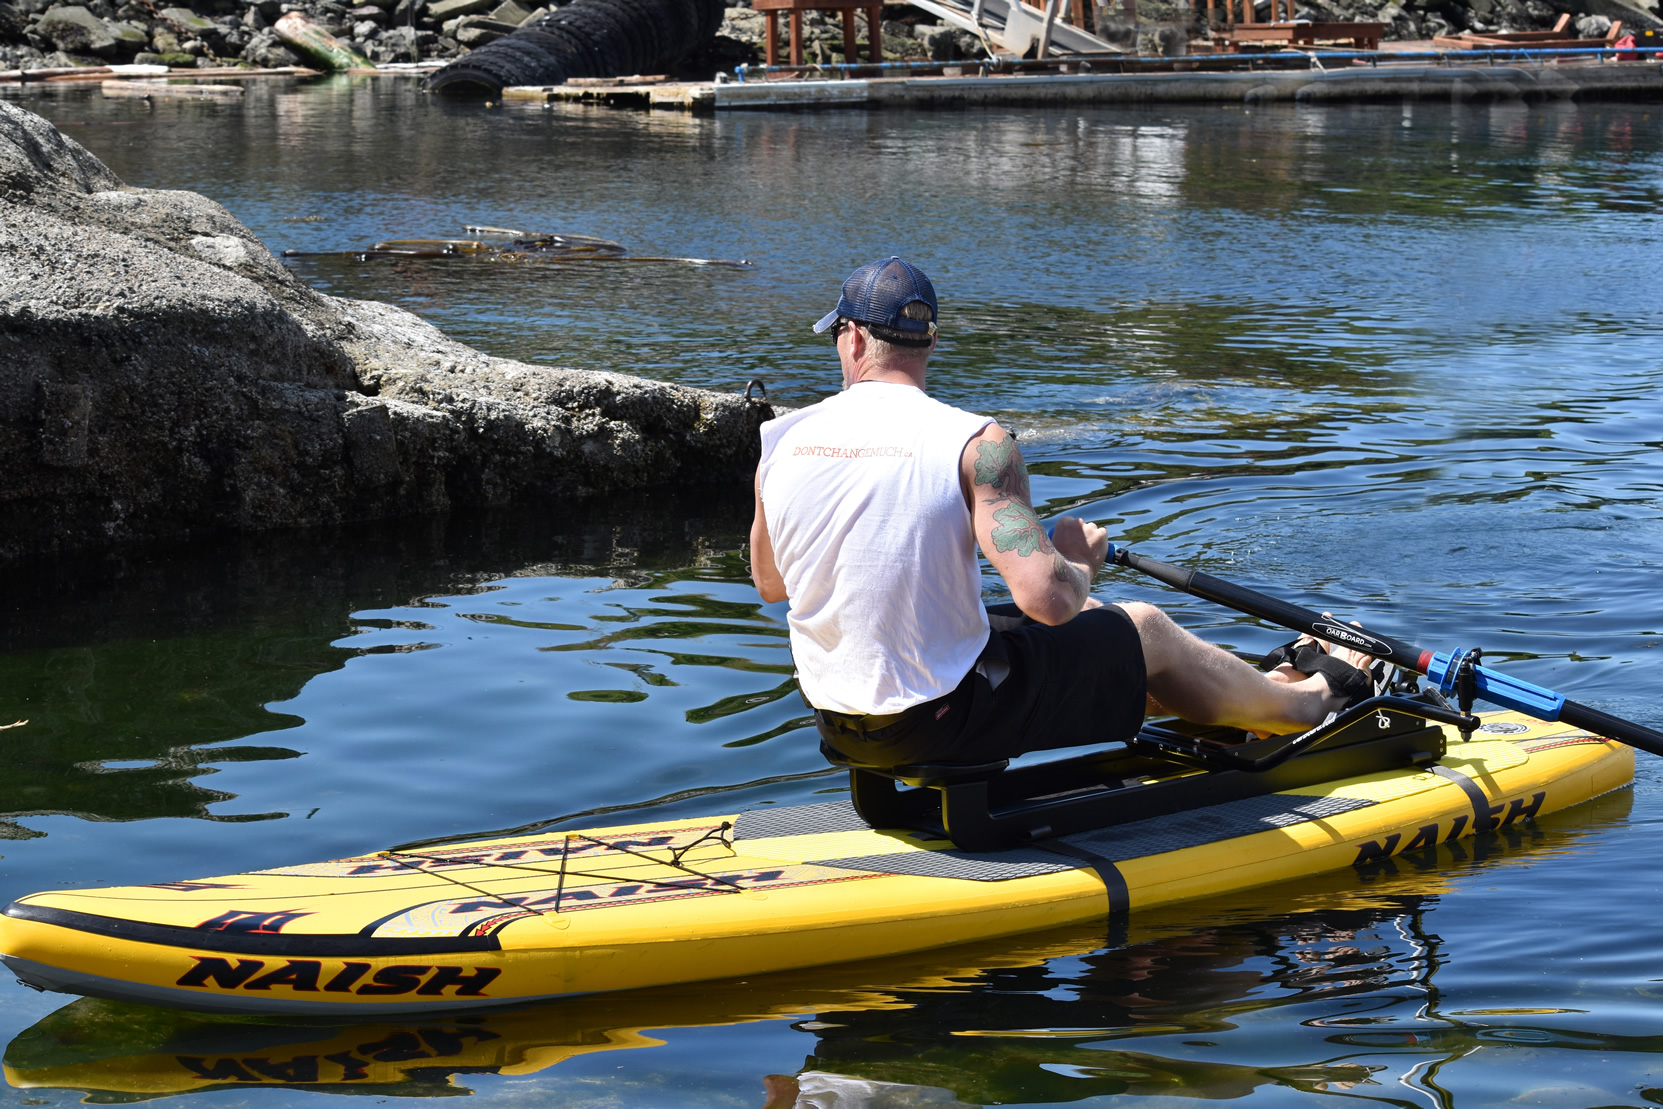 Oar Board® Rower, Whitehall Rowing and Sail